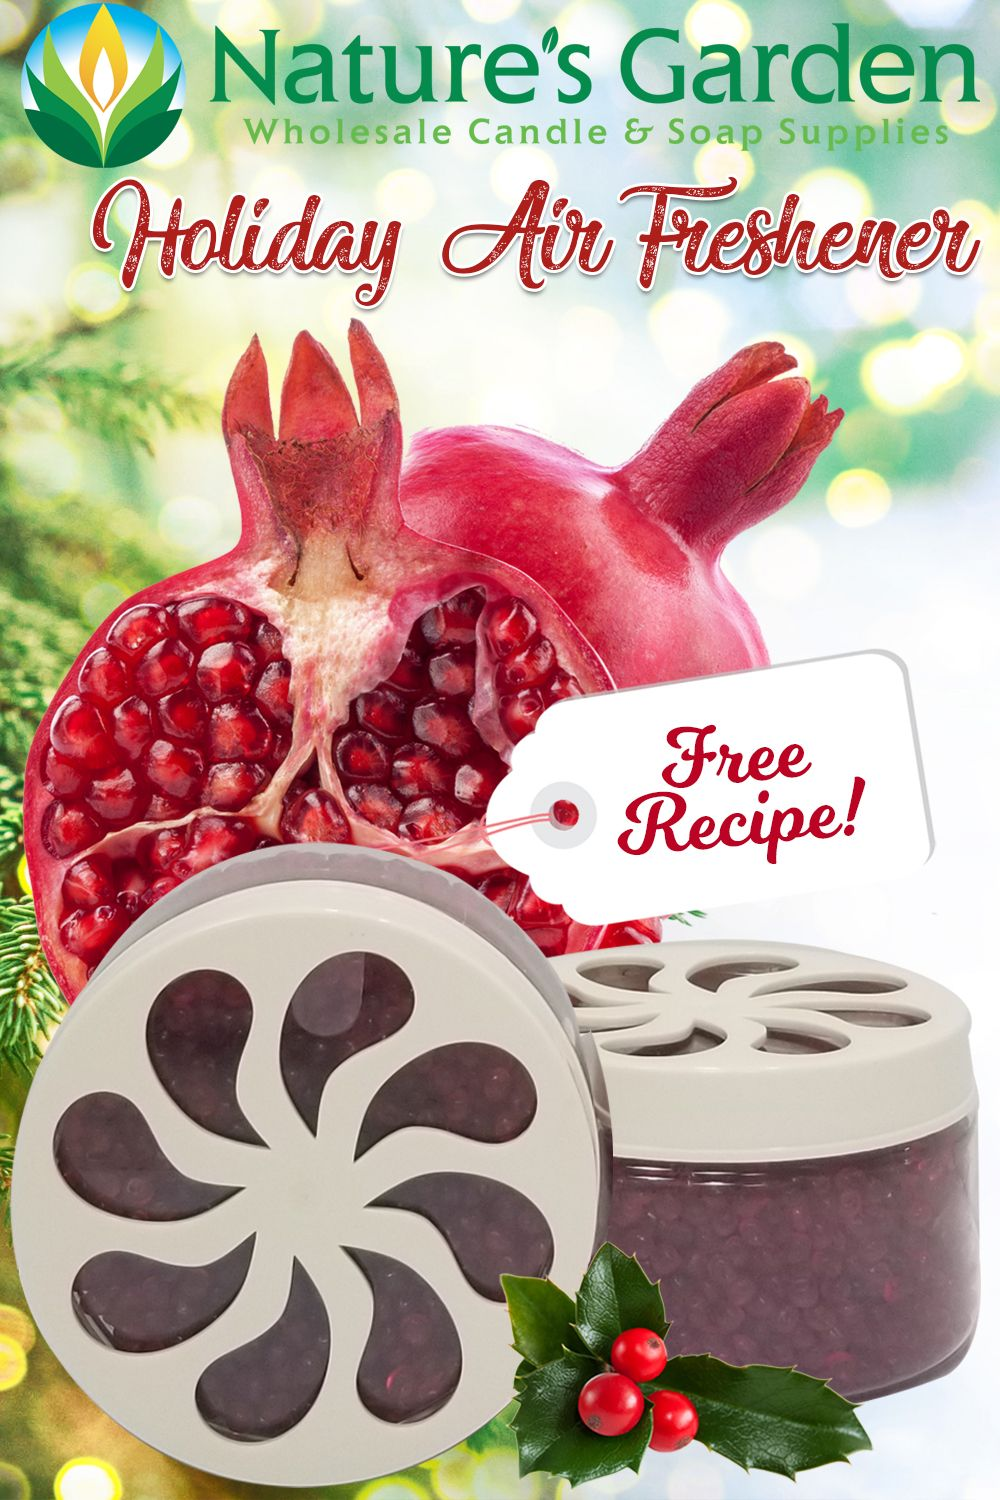 Free Holiday Air Freshener Recipe by Natures Garden. Air